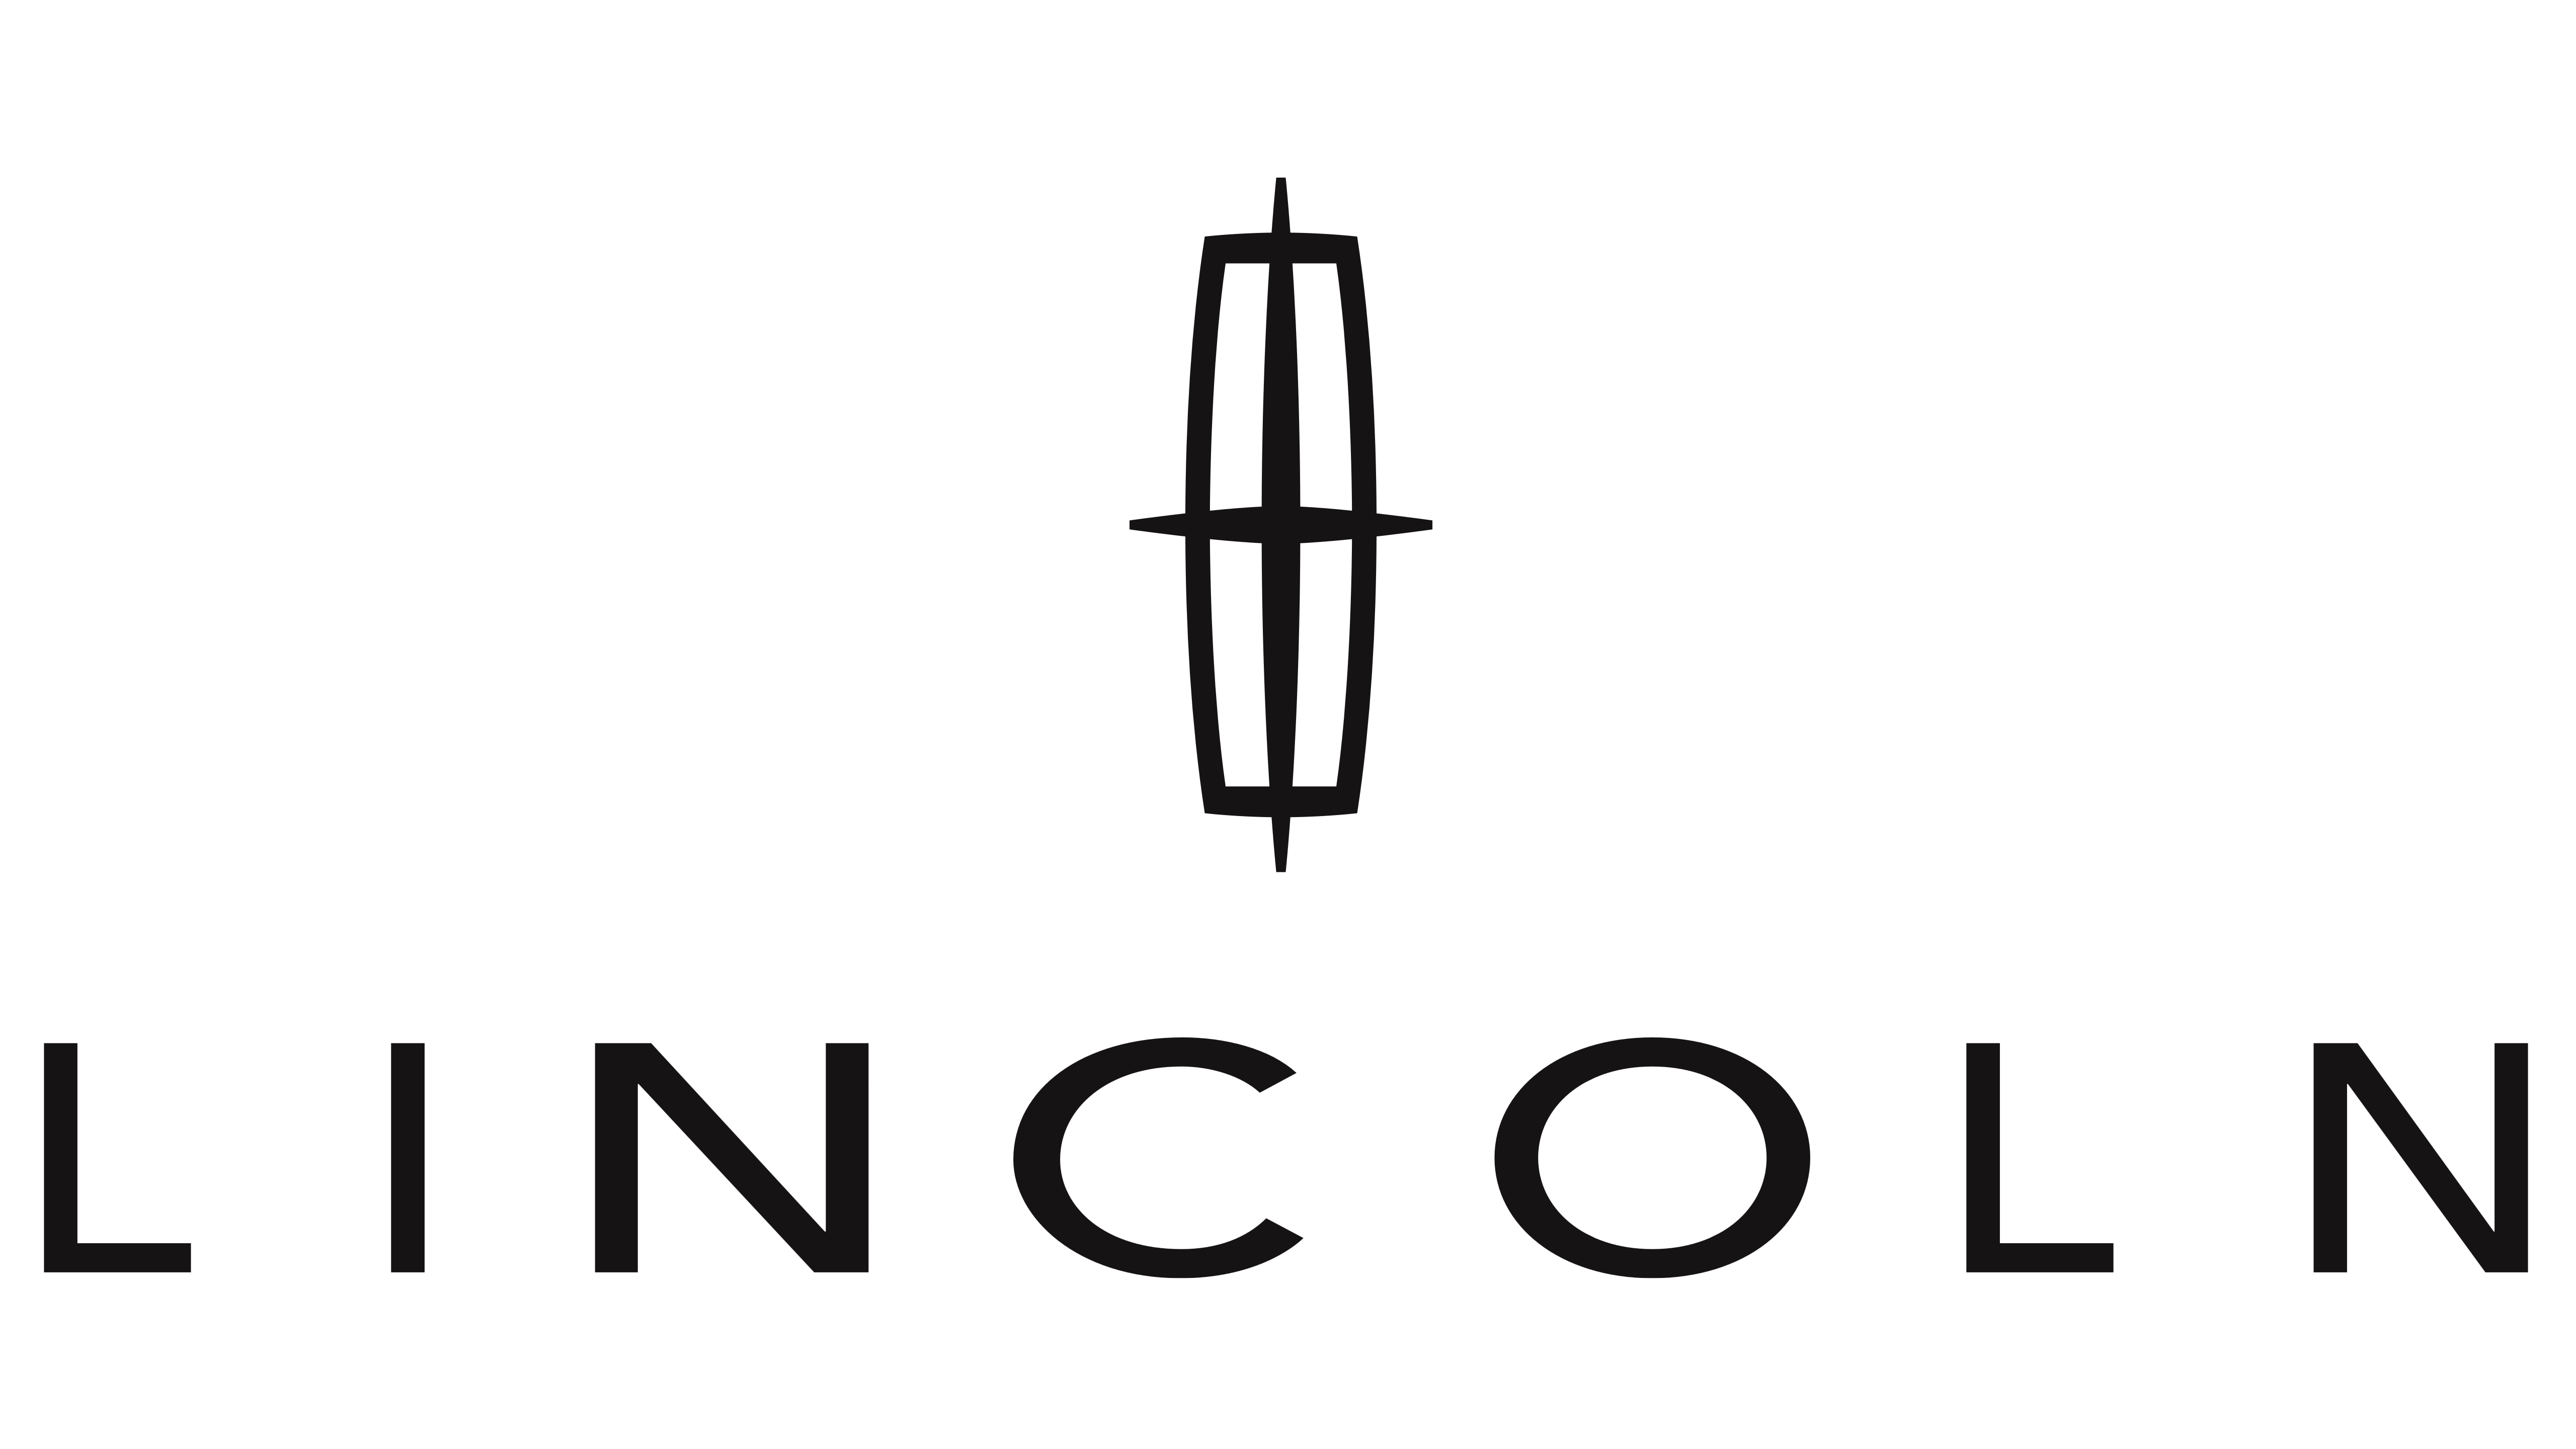 Lincoln Logo, HD Png, Meaning, Information.